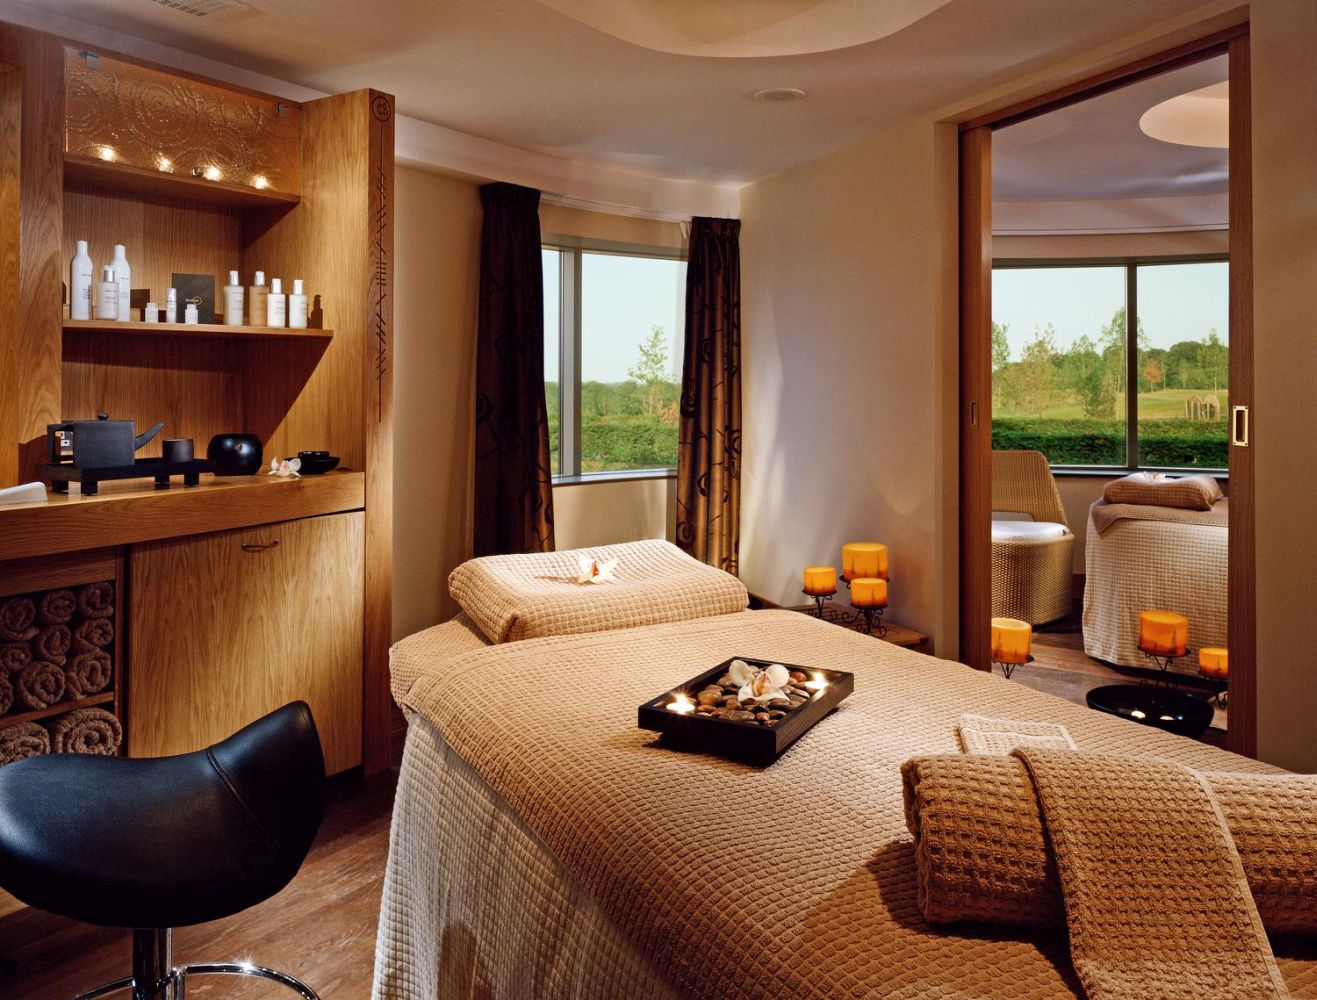 Fota Island Hotel Rooms